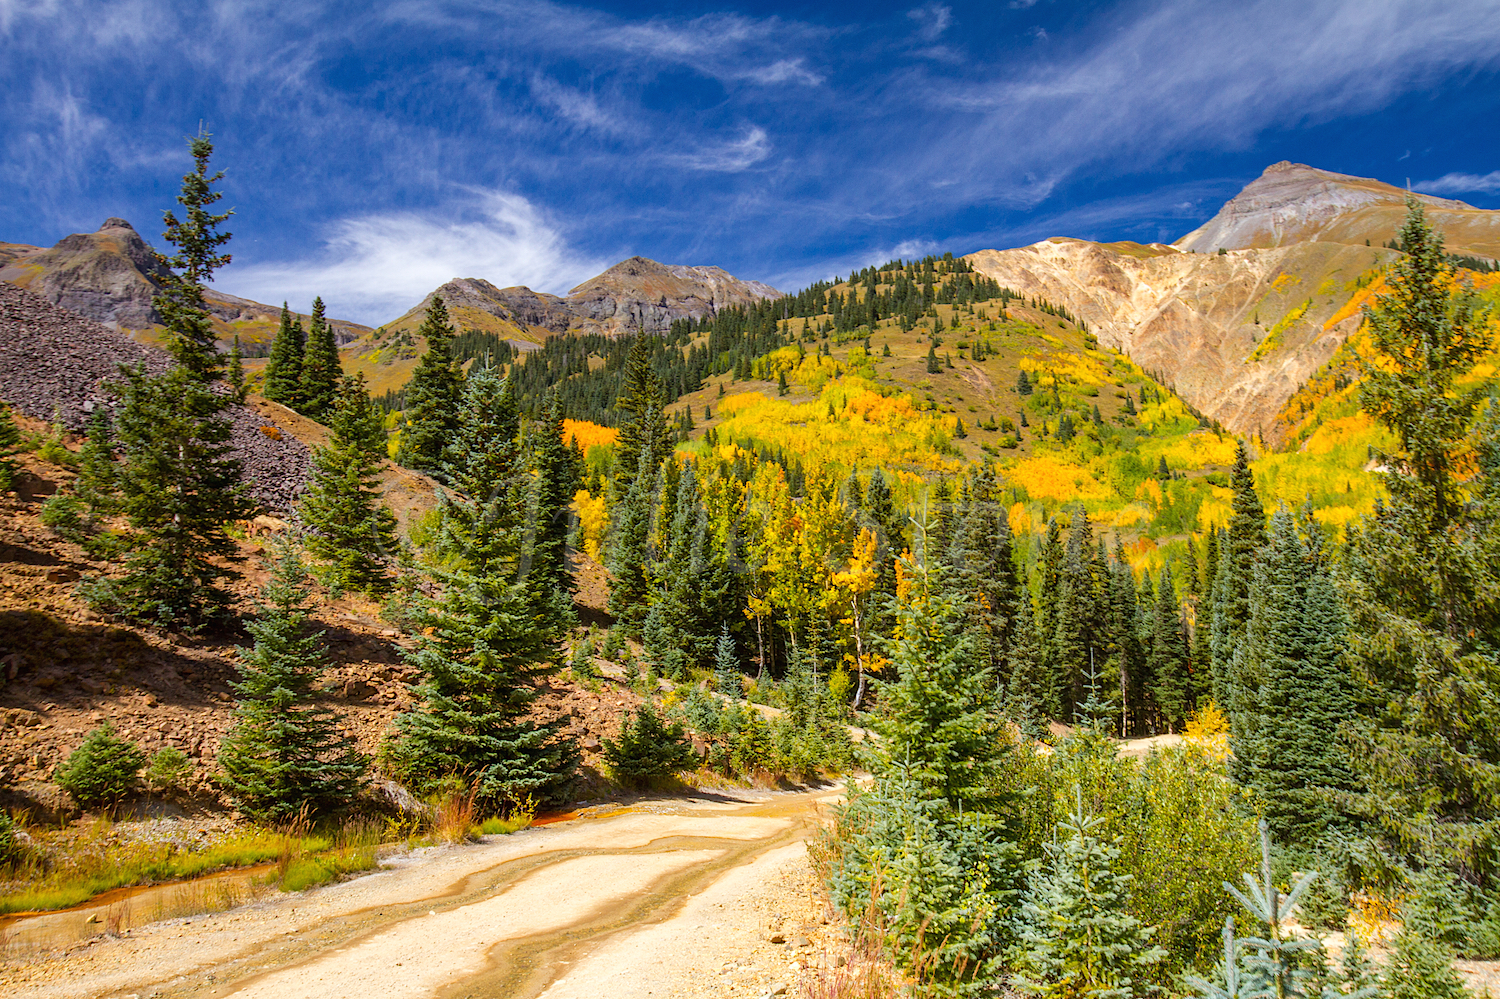 Red Mountain Fall Color, Image #9516